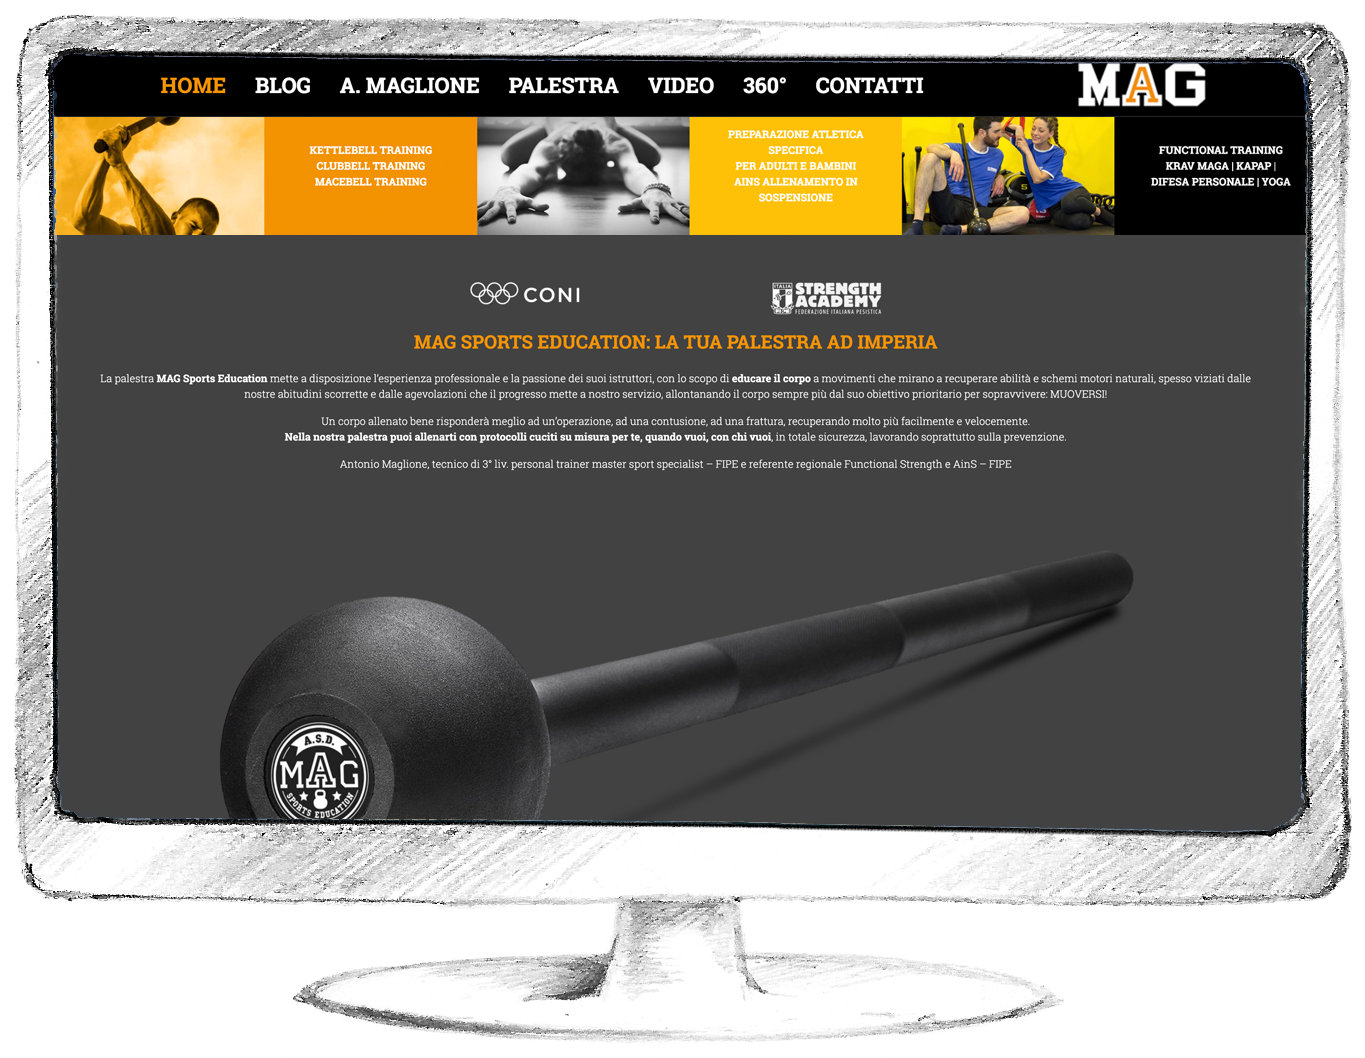 web agency blix - MagSport